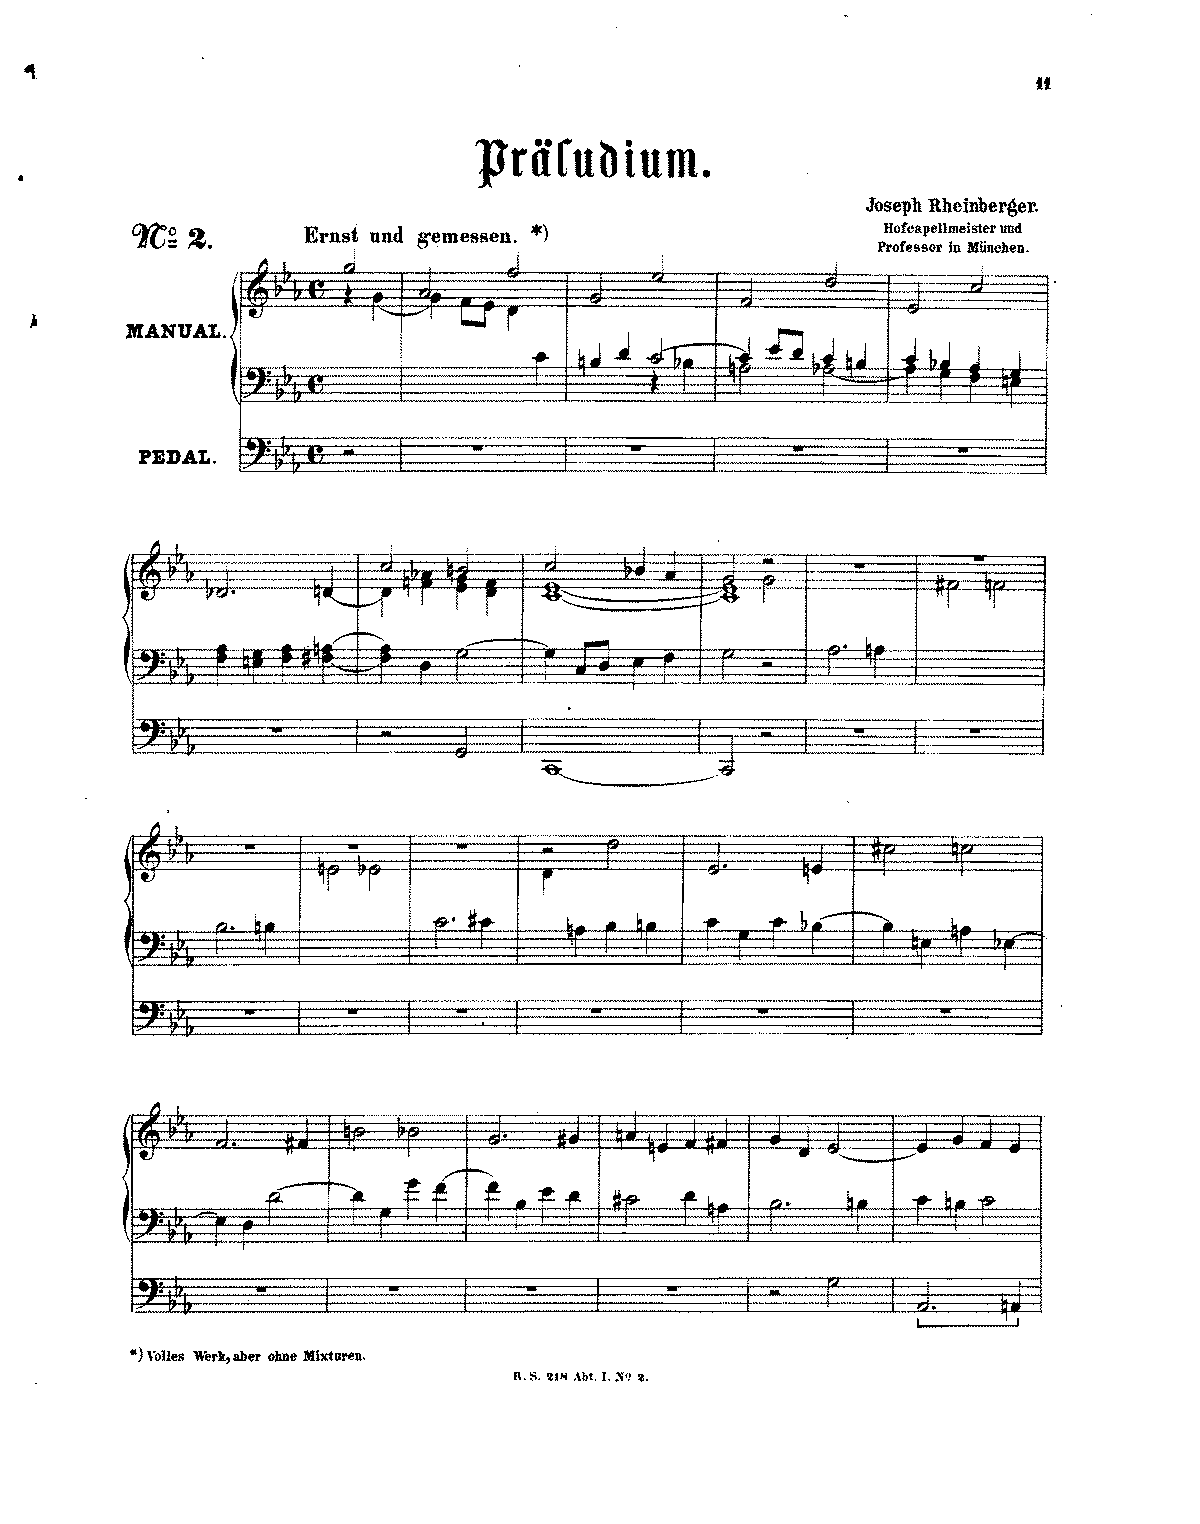 PMLP76960-Rheinberger - Prelude in C minor.pdf